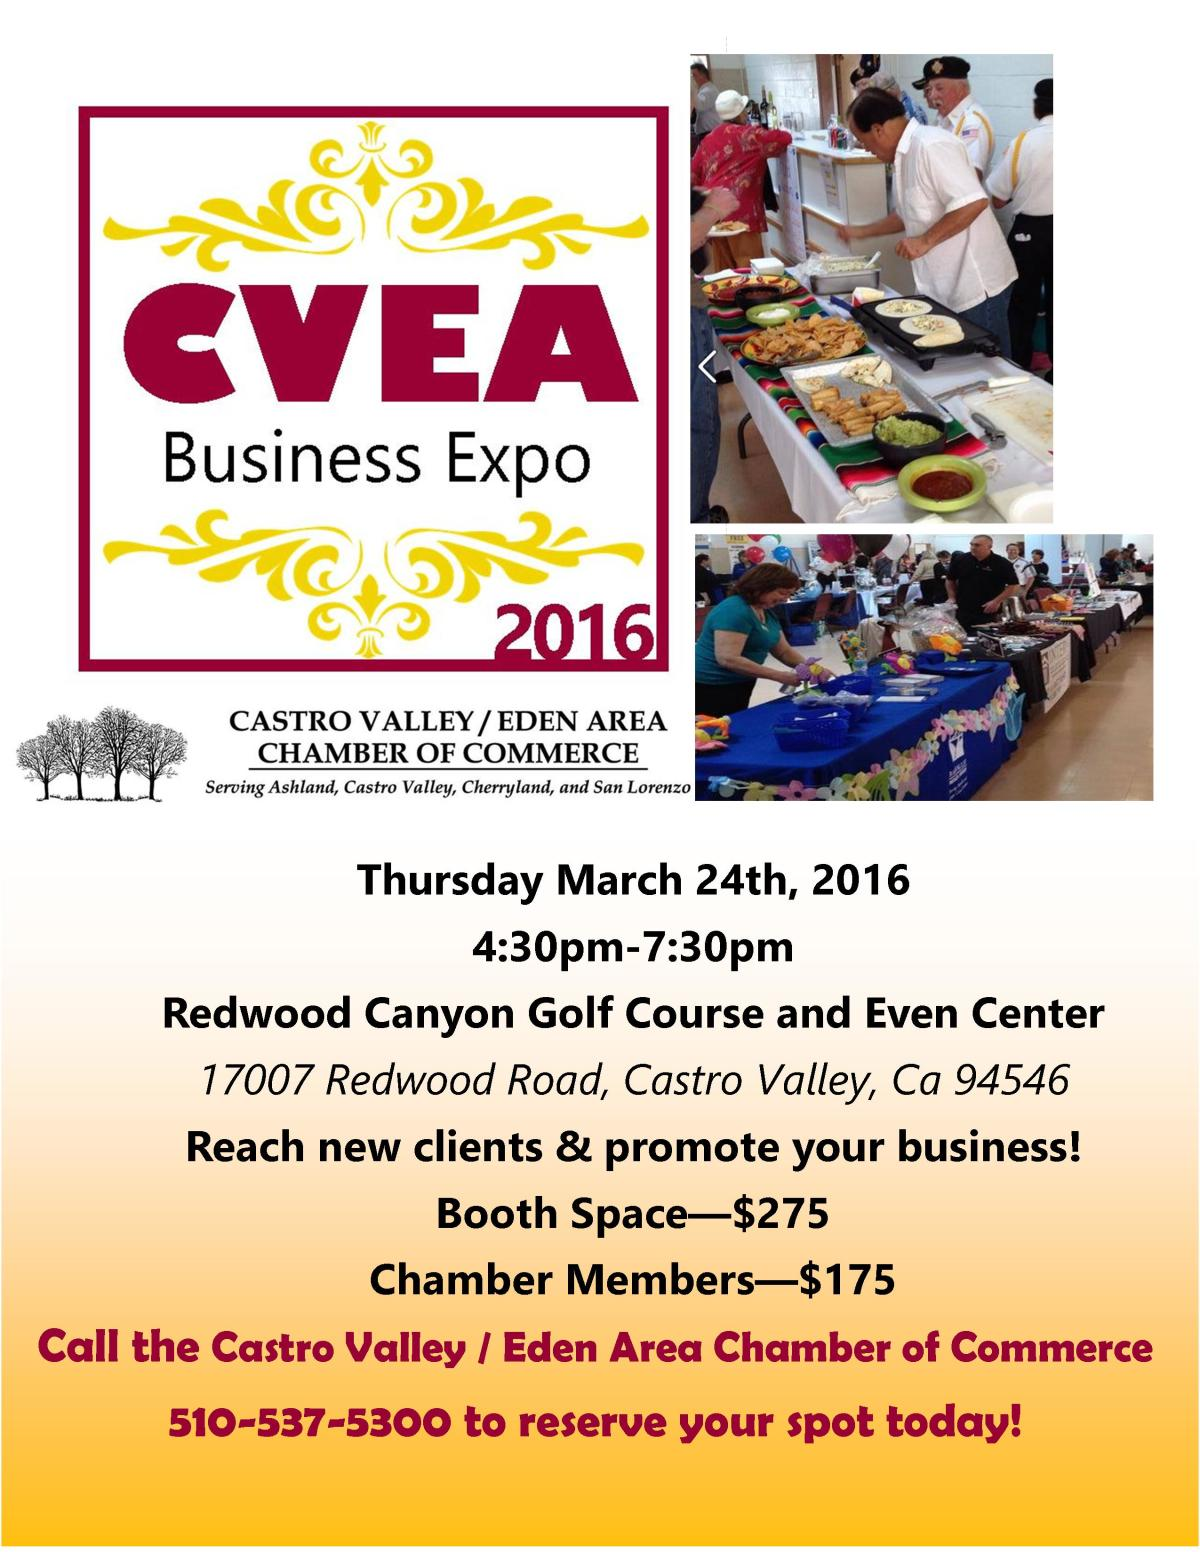 CVEA Business Expo on March 24